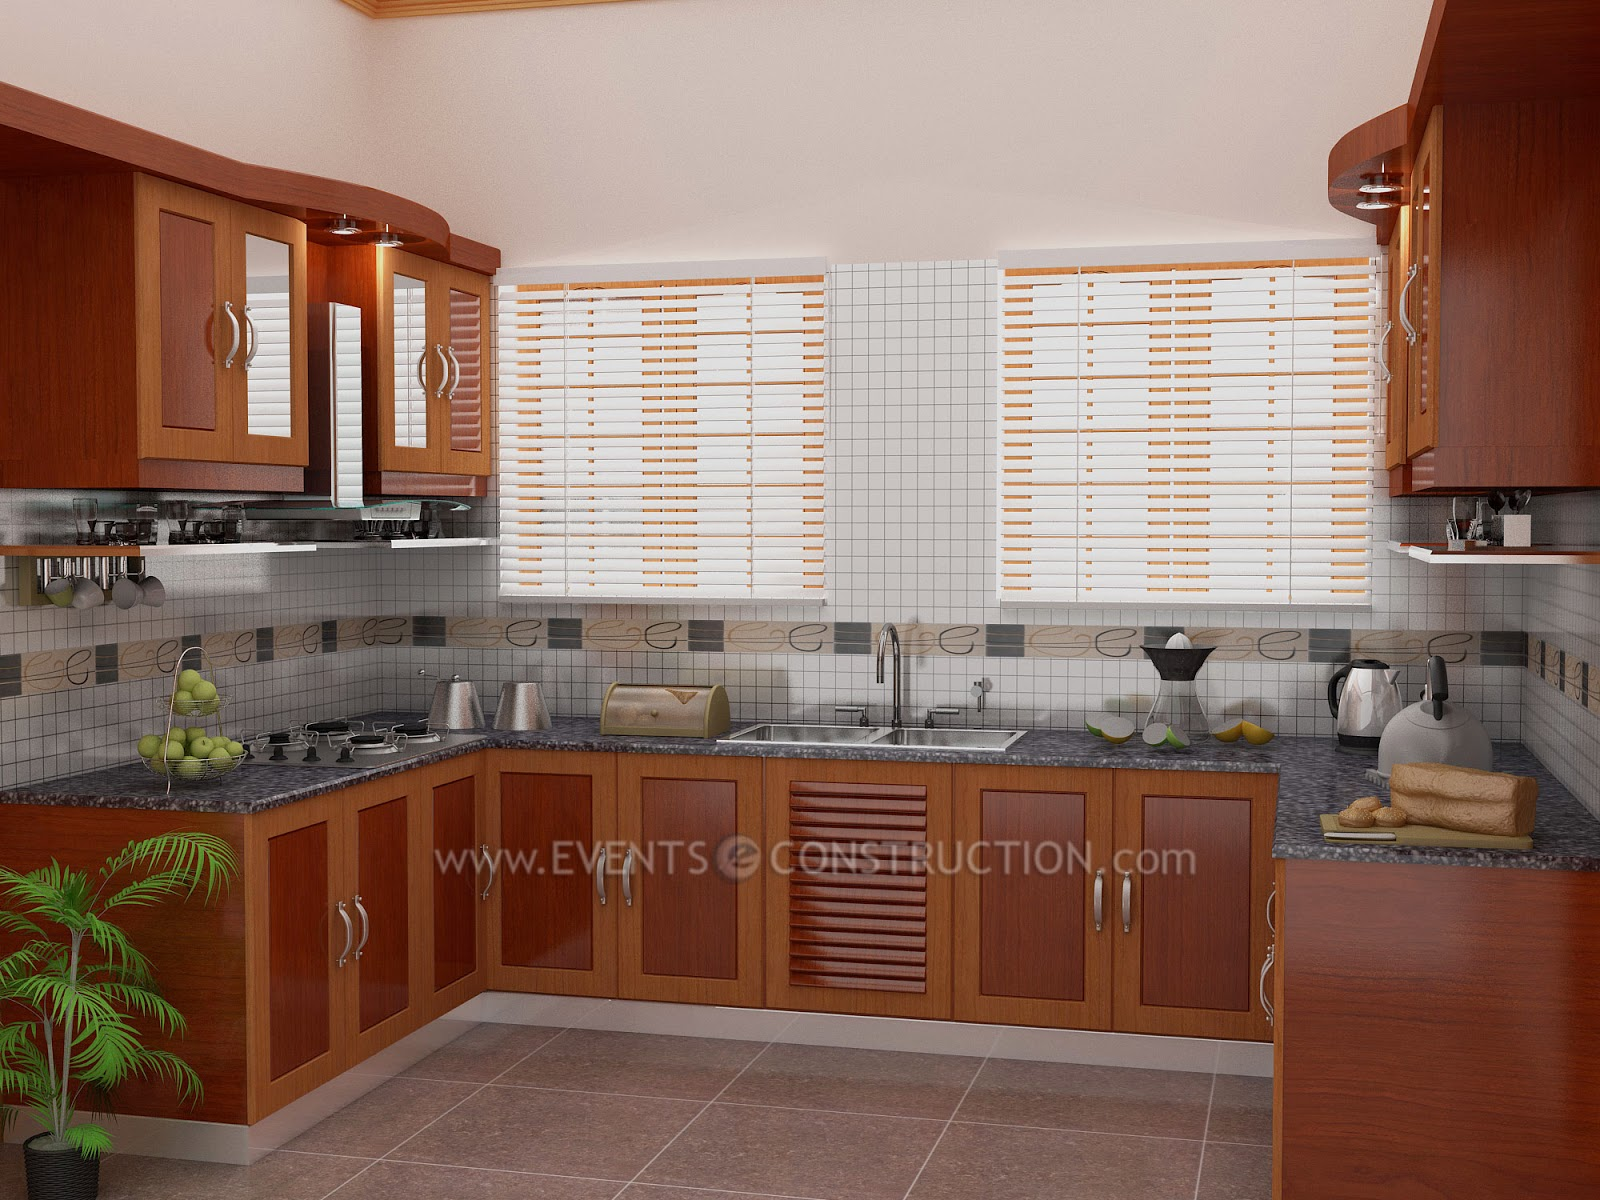 Evens construction pvt ltd simple kerala kitchen design for New kitchen designs in kerala